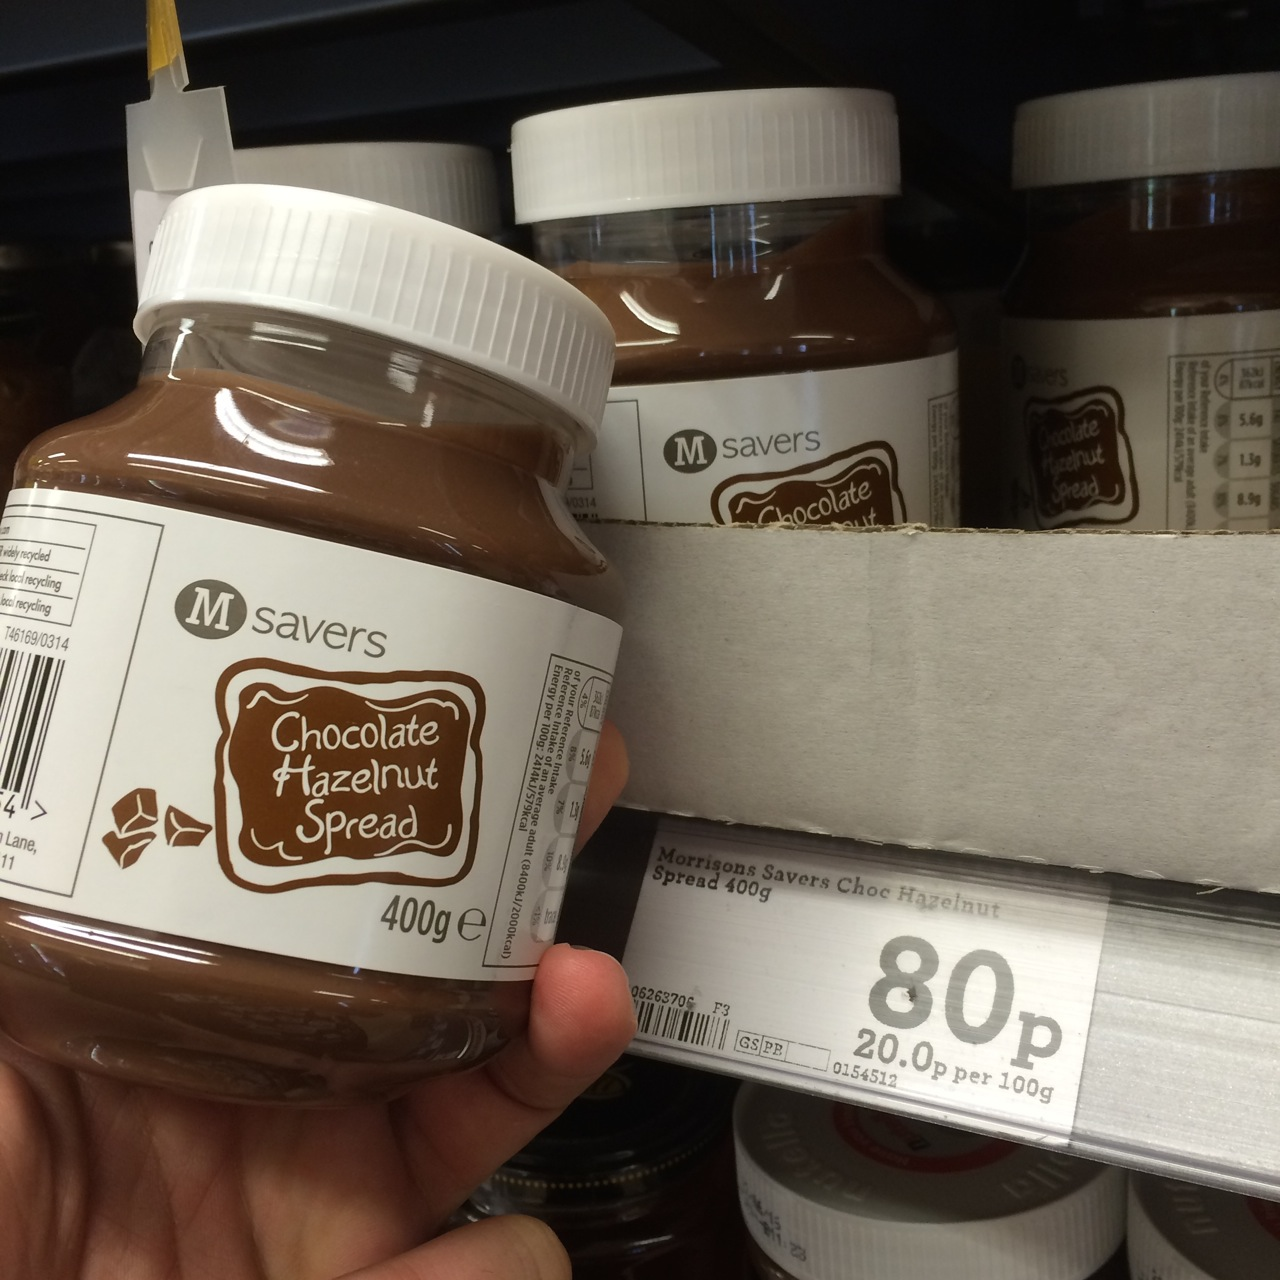 https://i1.wp.com/fatgayvegan.com/wp-content/uploads/2015/08/Morrisons-chocolate-spread.jpg?fit=1280%2C1280